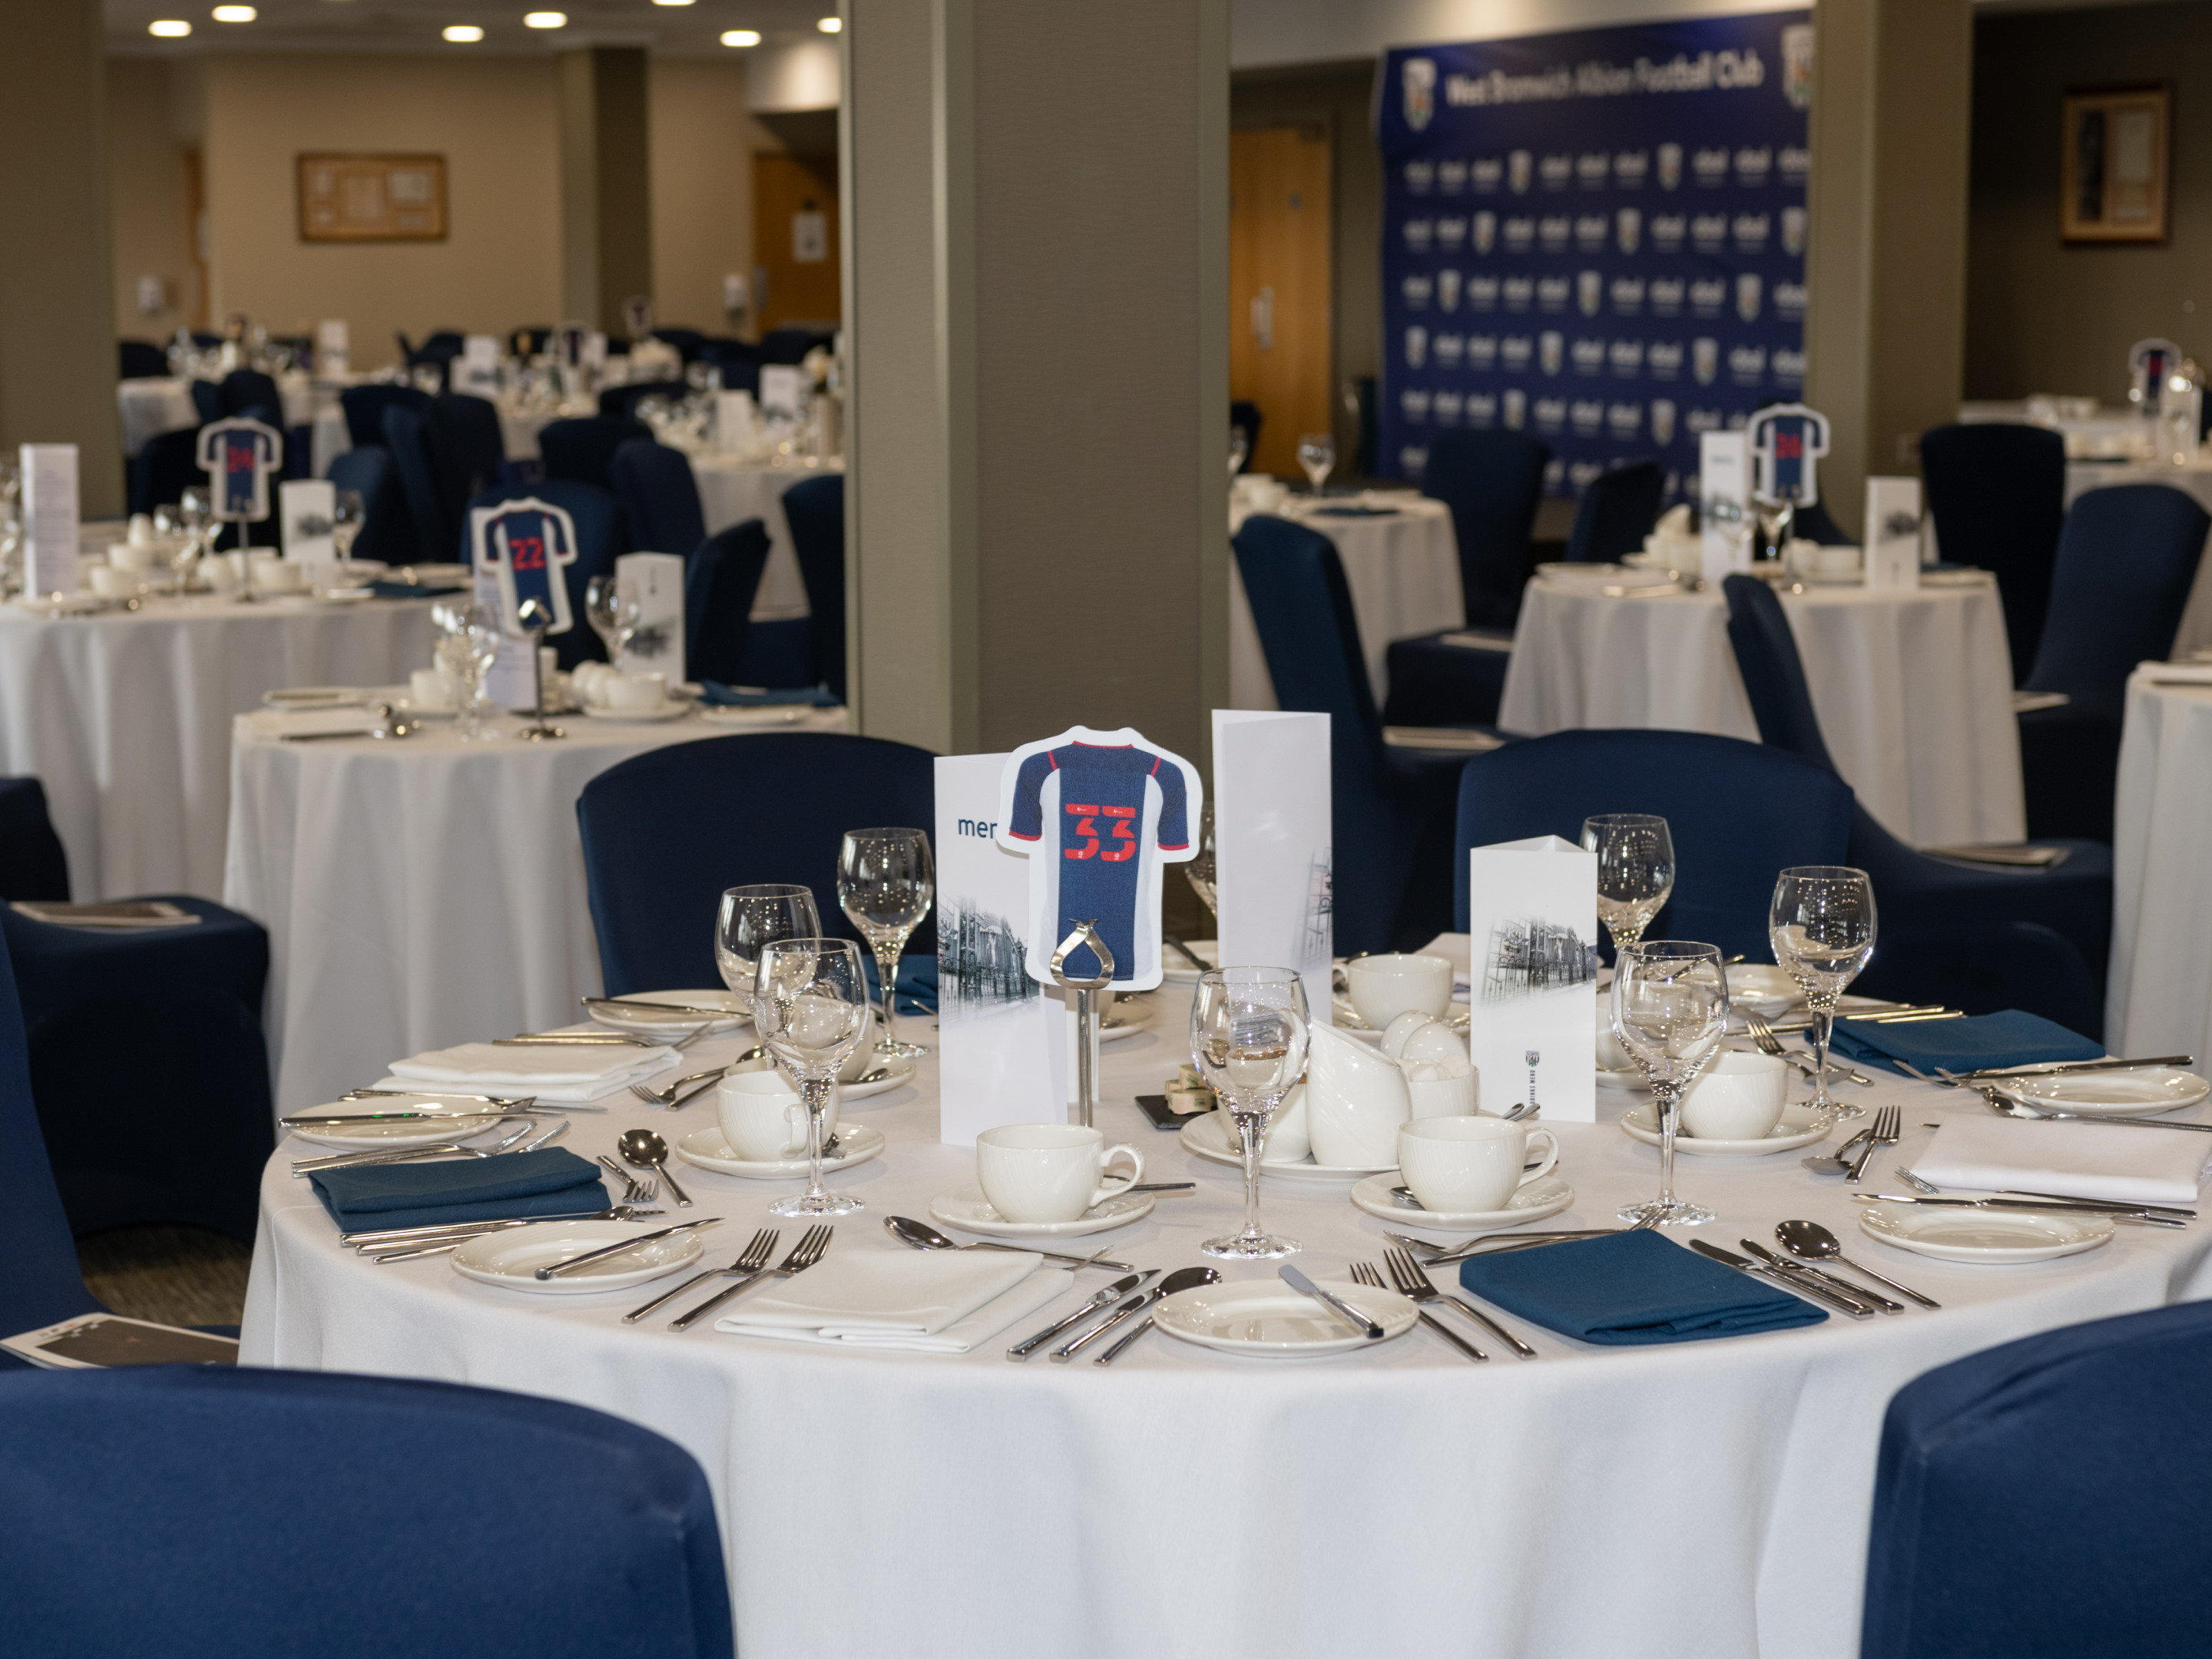 West Bromwich Albion Hospitality